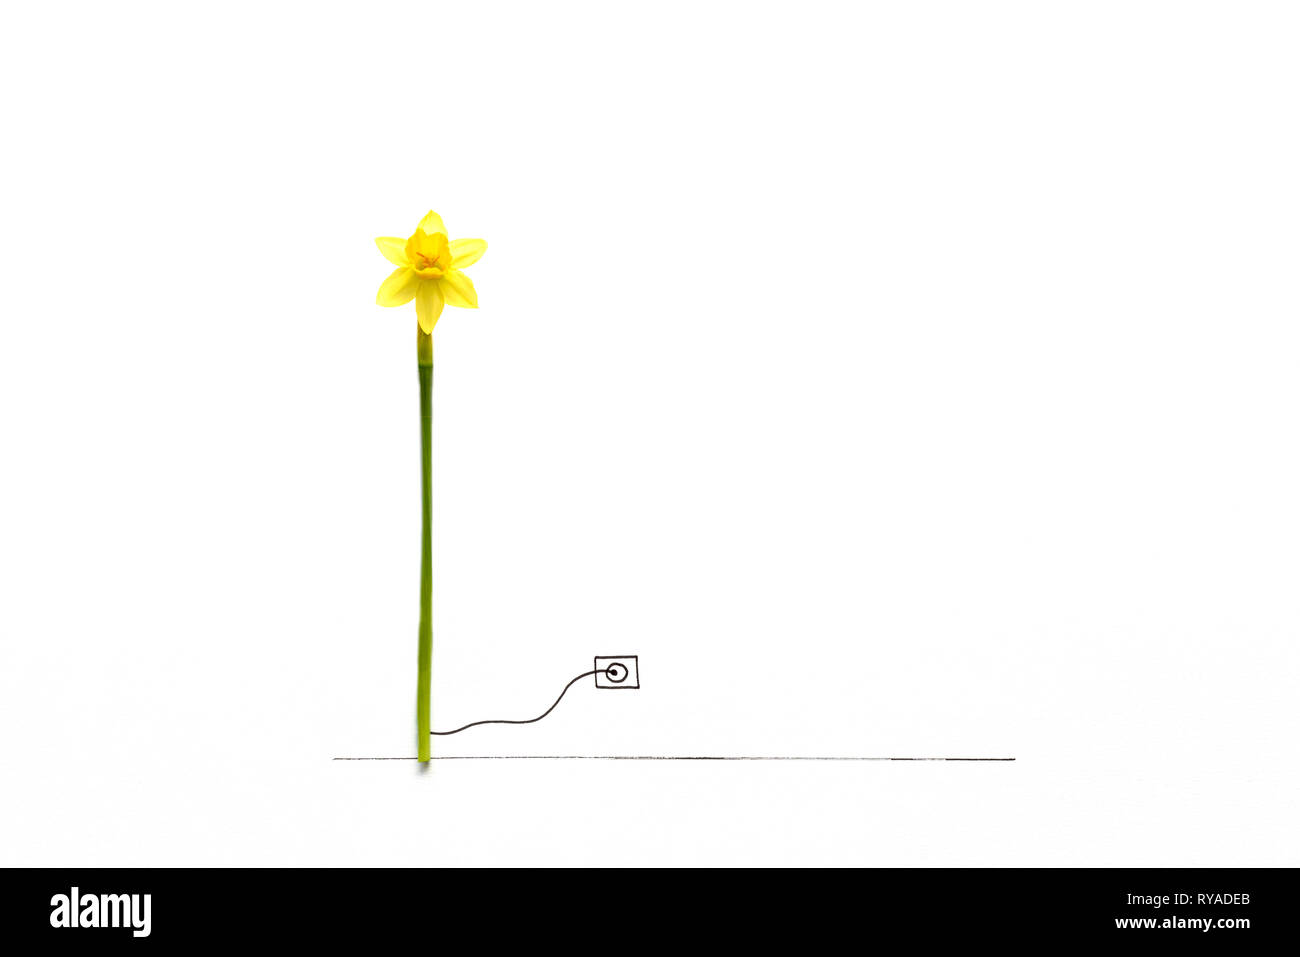 Narcissus flower associated with wind generator turbine attached to drawn electric outlet. Natural energy or creative eco concept. Copy space - Stock Image